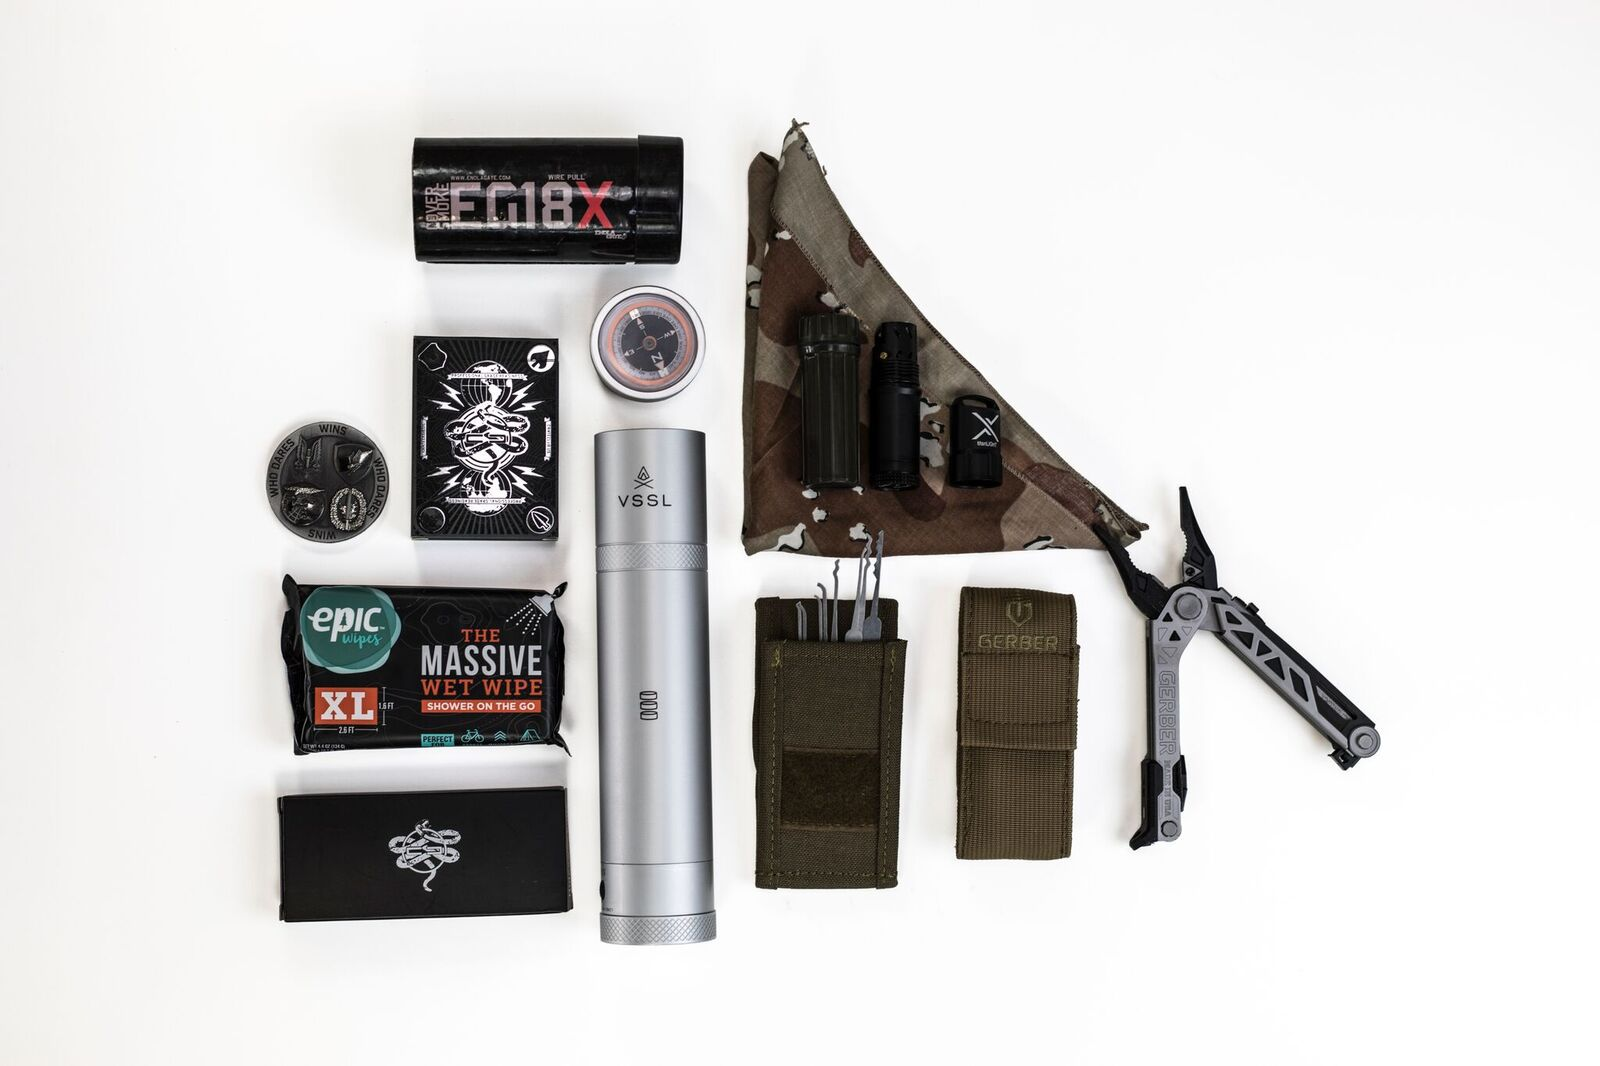 Crate Club monthly subscription box